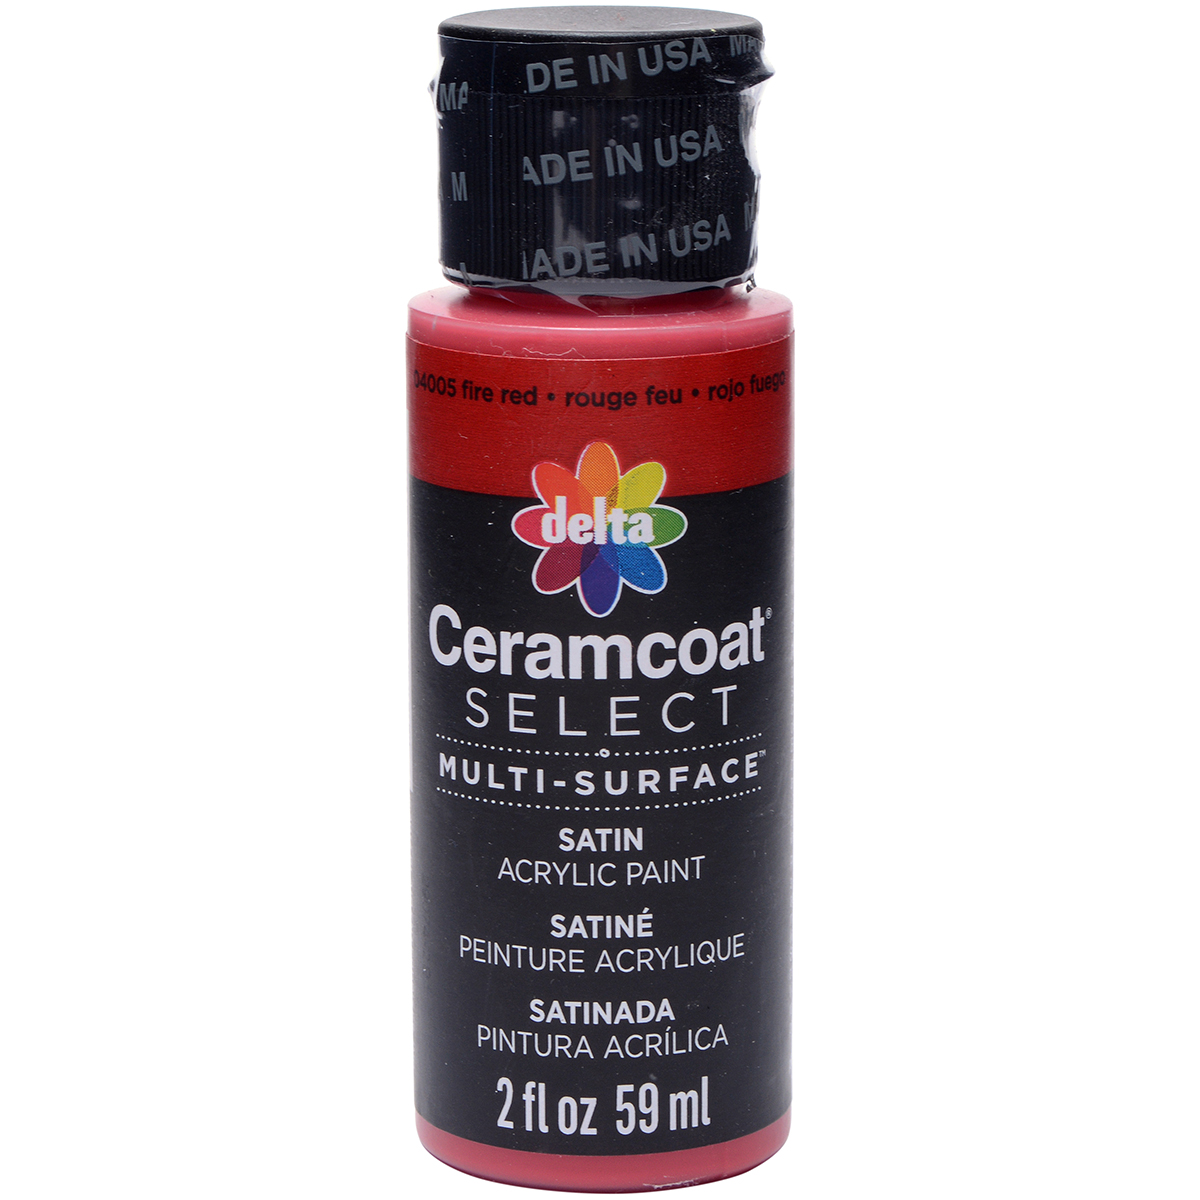 Ceramcoat Select Multi-Surface Paint 2oz-Fire Red